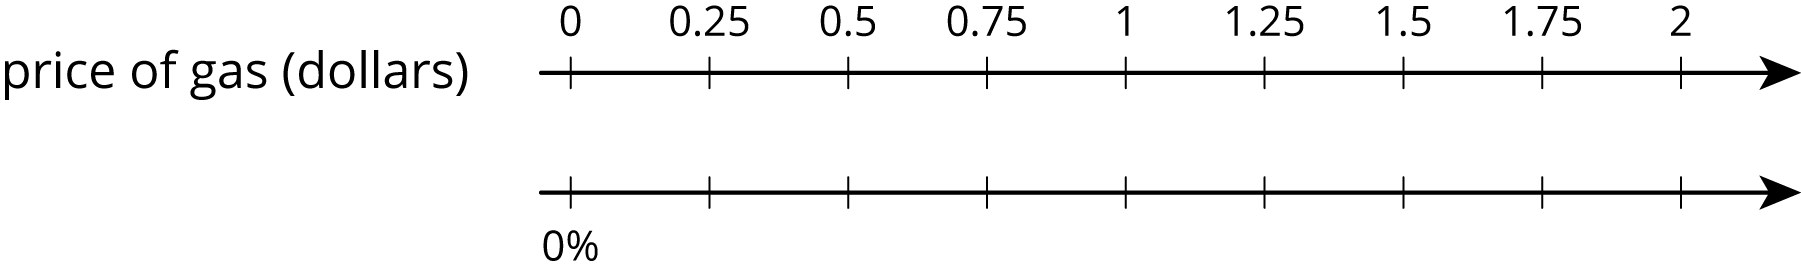 """A double number line for """"price of gas in dollars"""" with 9 evenly spaced tick marks. On the top number line starting with the first tick mark zero, zero point 2 5, zero point 5, zero point 7 5, one, one point 2 5, one point 5, one point 7 5 and 2 are labeled. On the bottom number line, zero percent is on the first tick mark and the remaining tick marks are not labeled."""